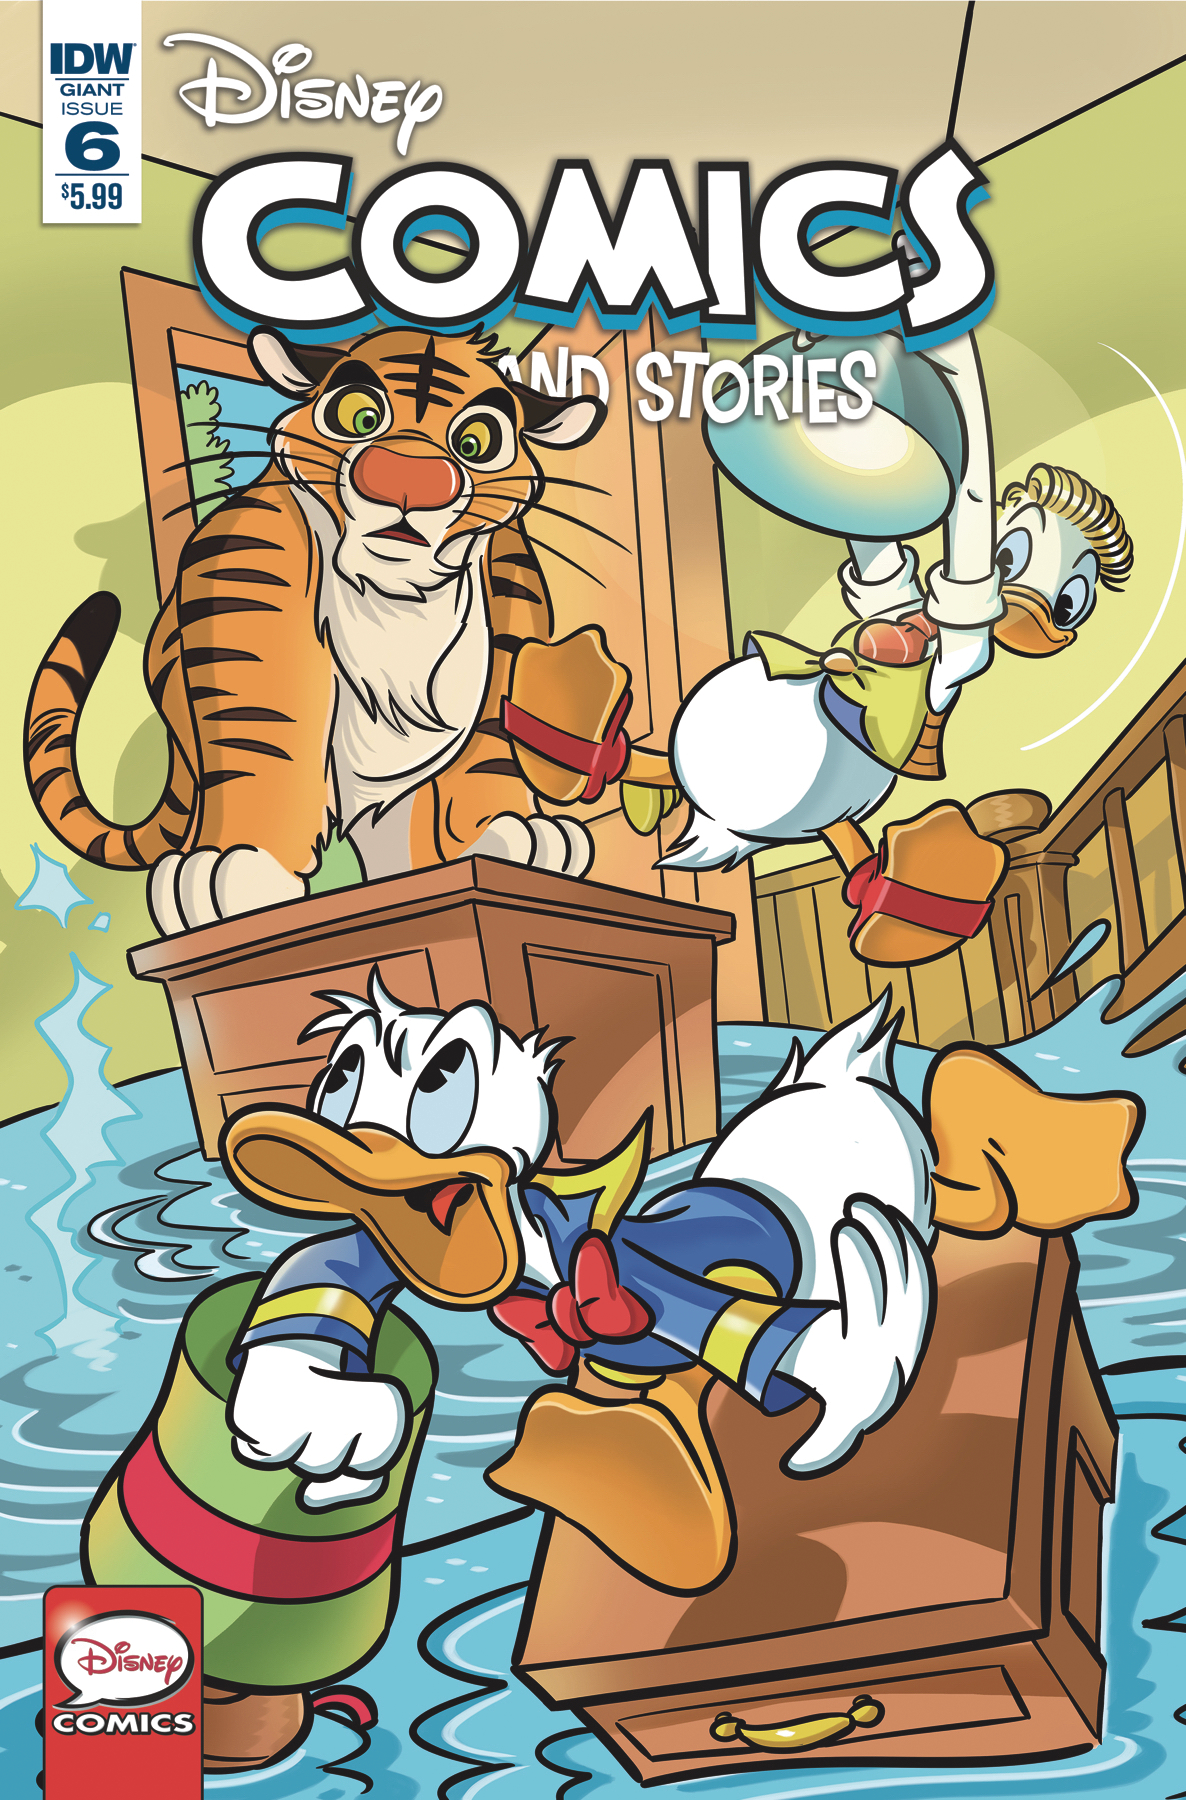 DISNEY COMICS AND STORIES #6 CVR A MAZZARELLO